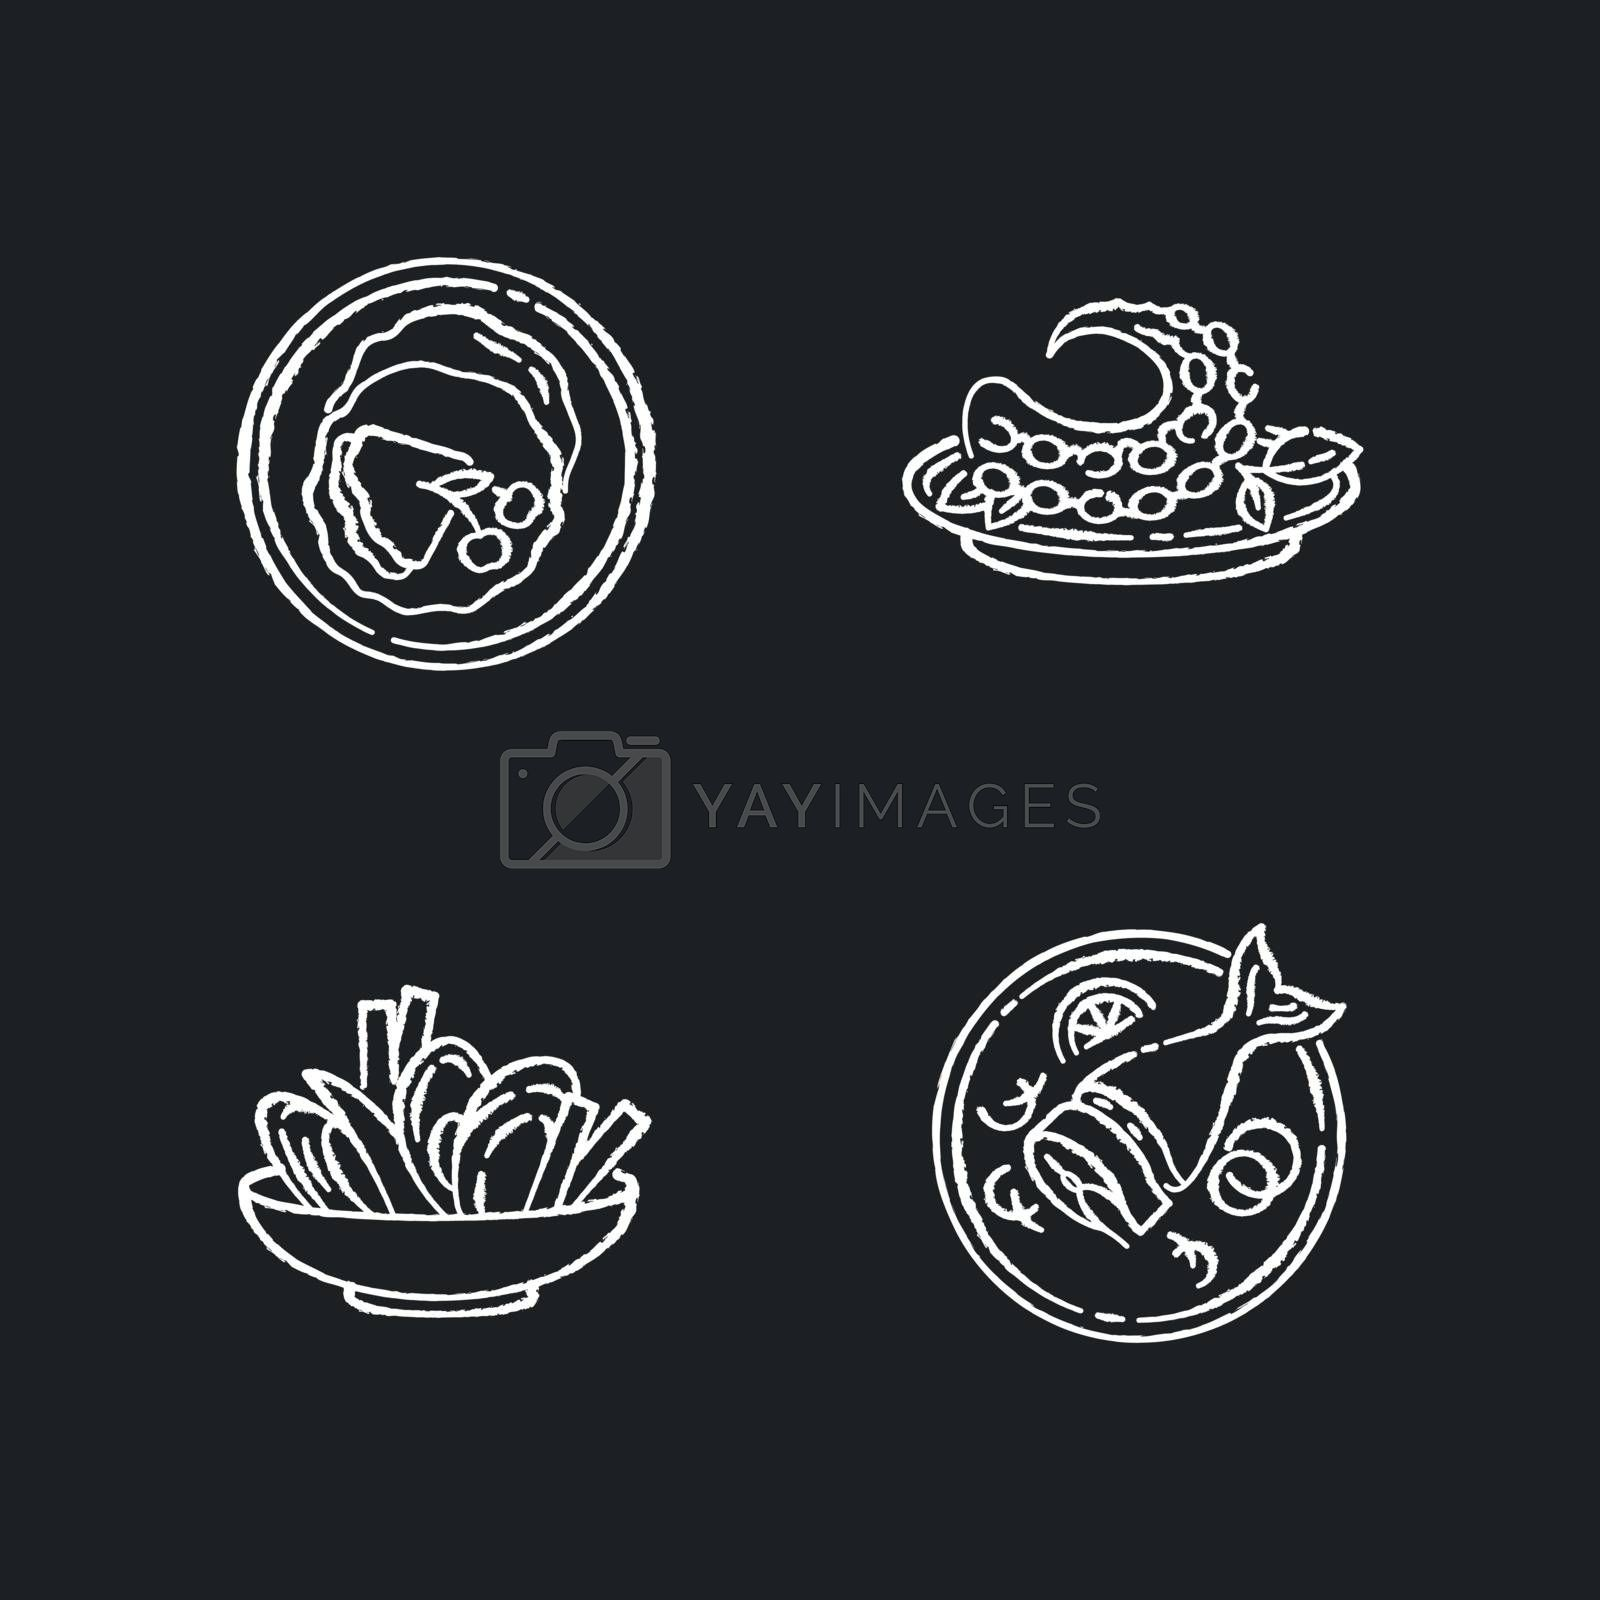 National dish chalk white icons set on black background. French crepes. Thin pancakes. Soused herring. Mussels and chips. Octopus dish. Restaurant meal. Isolated vector chalkboard illustrations